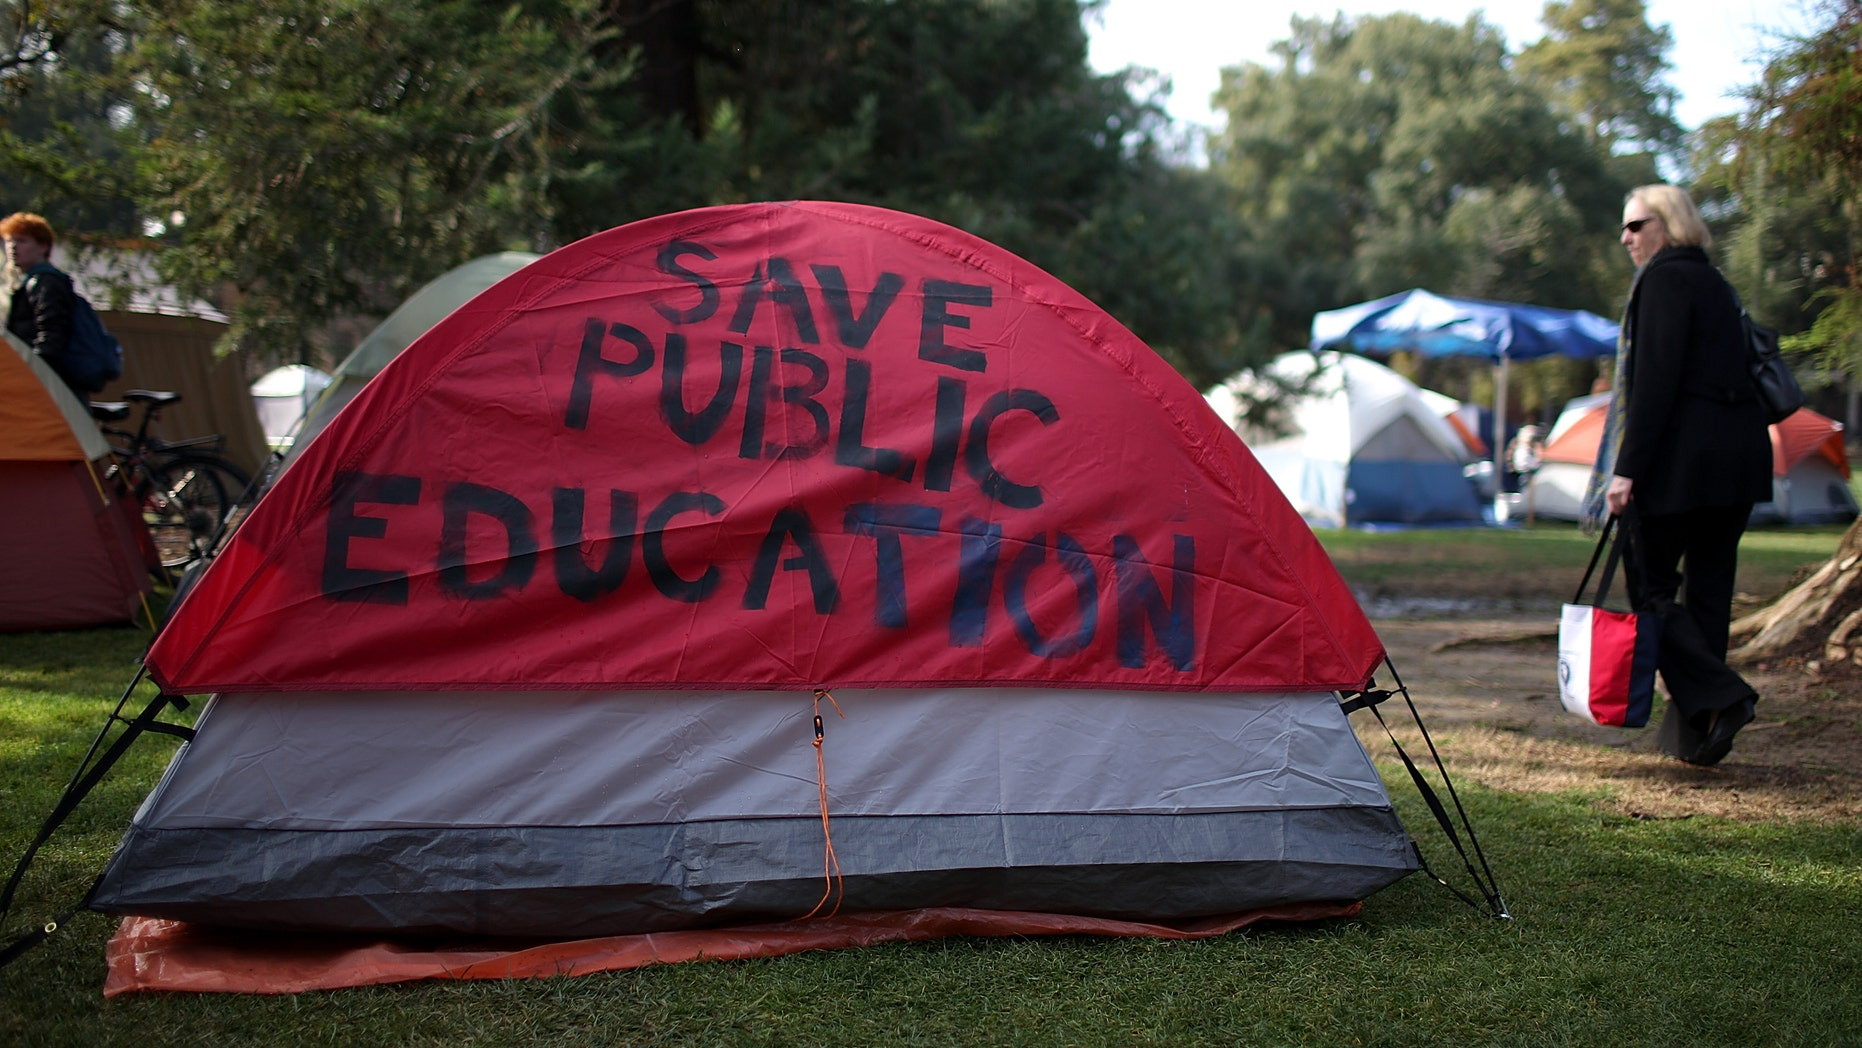 A message is written on the side of a tent at the Occupy UC Davis encampment on November 28, 2011 in Davis, California. (Photo by Justin Sullivan/Getty Images)